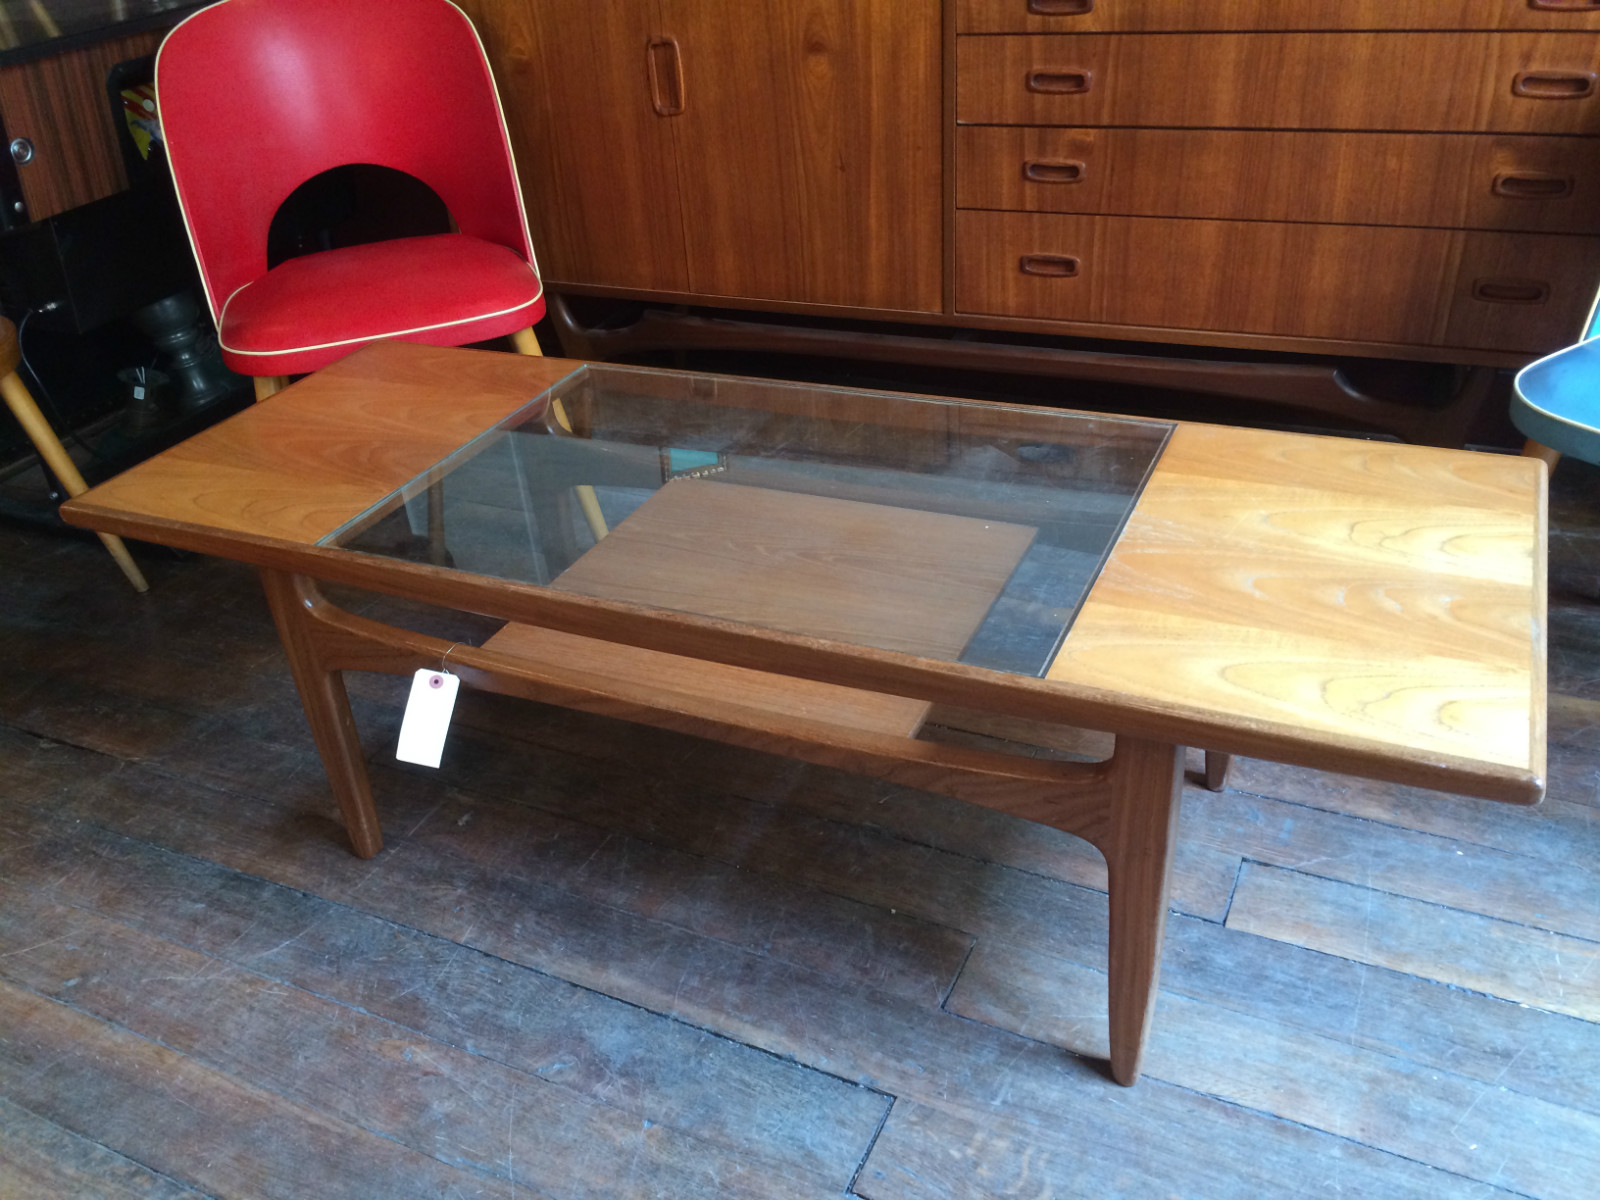 Table basse scandinave double plateau verre et teck ann e for Table basse double plateau scandinave